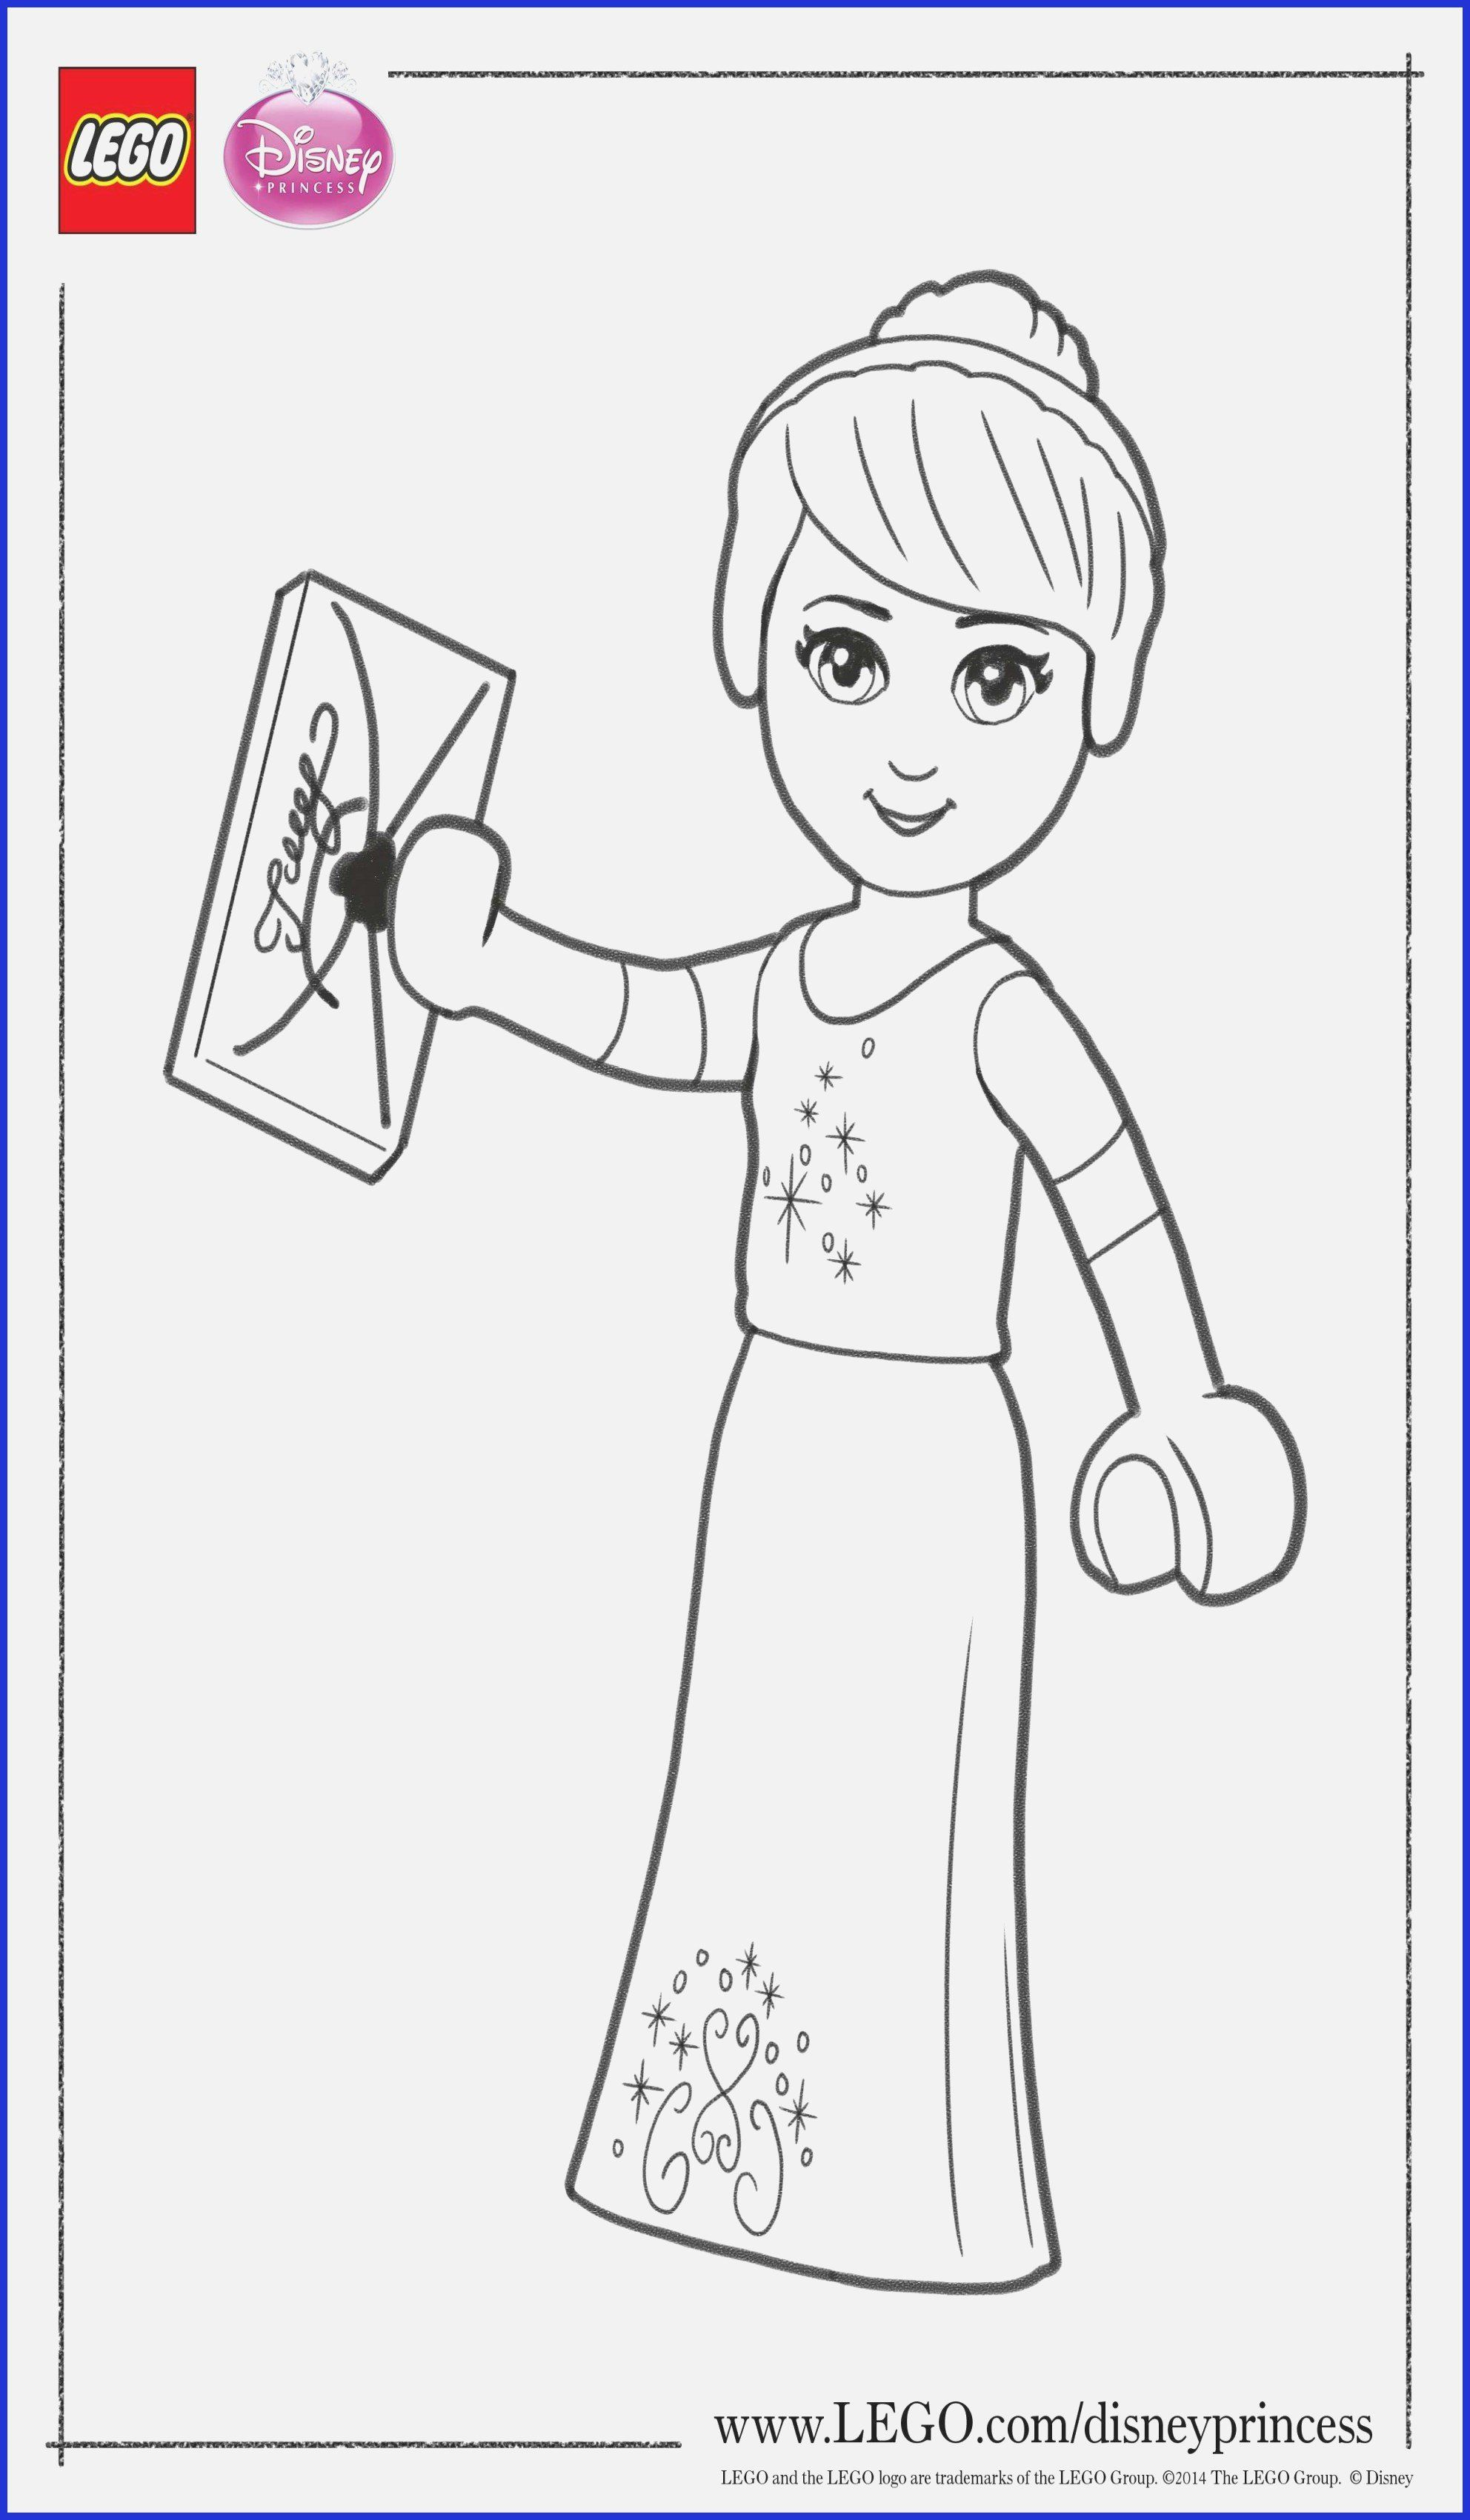 28 New Disney Princess Coloring Pages In 2020 Disney Princess